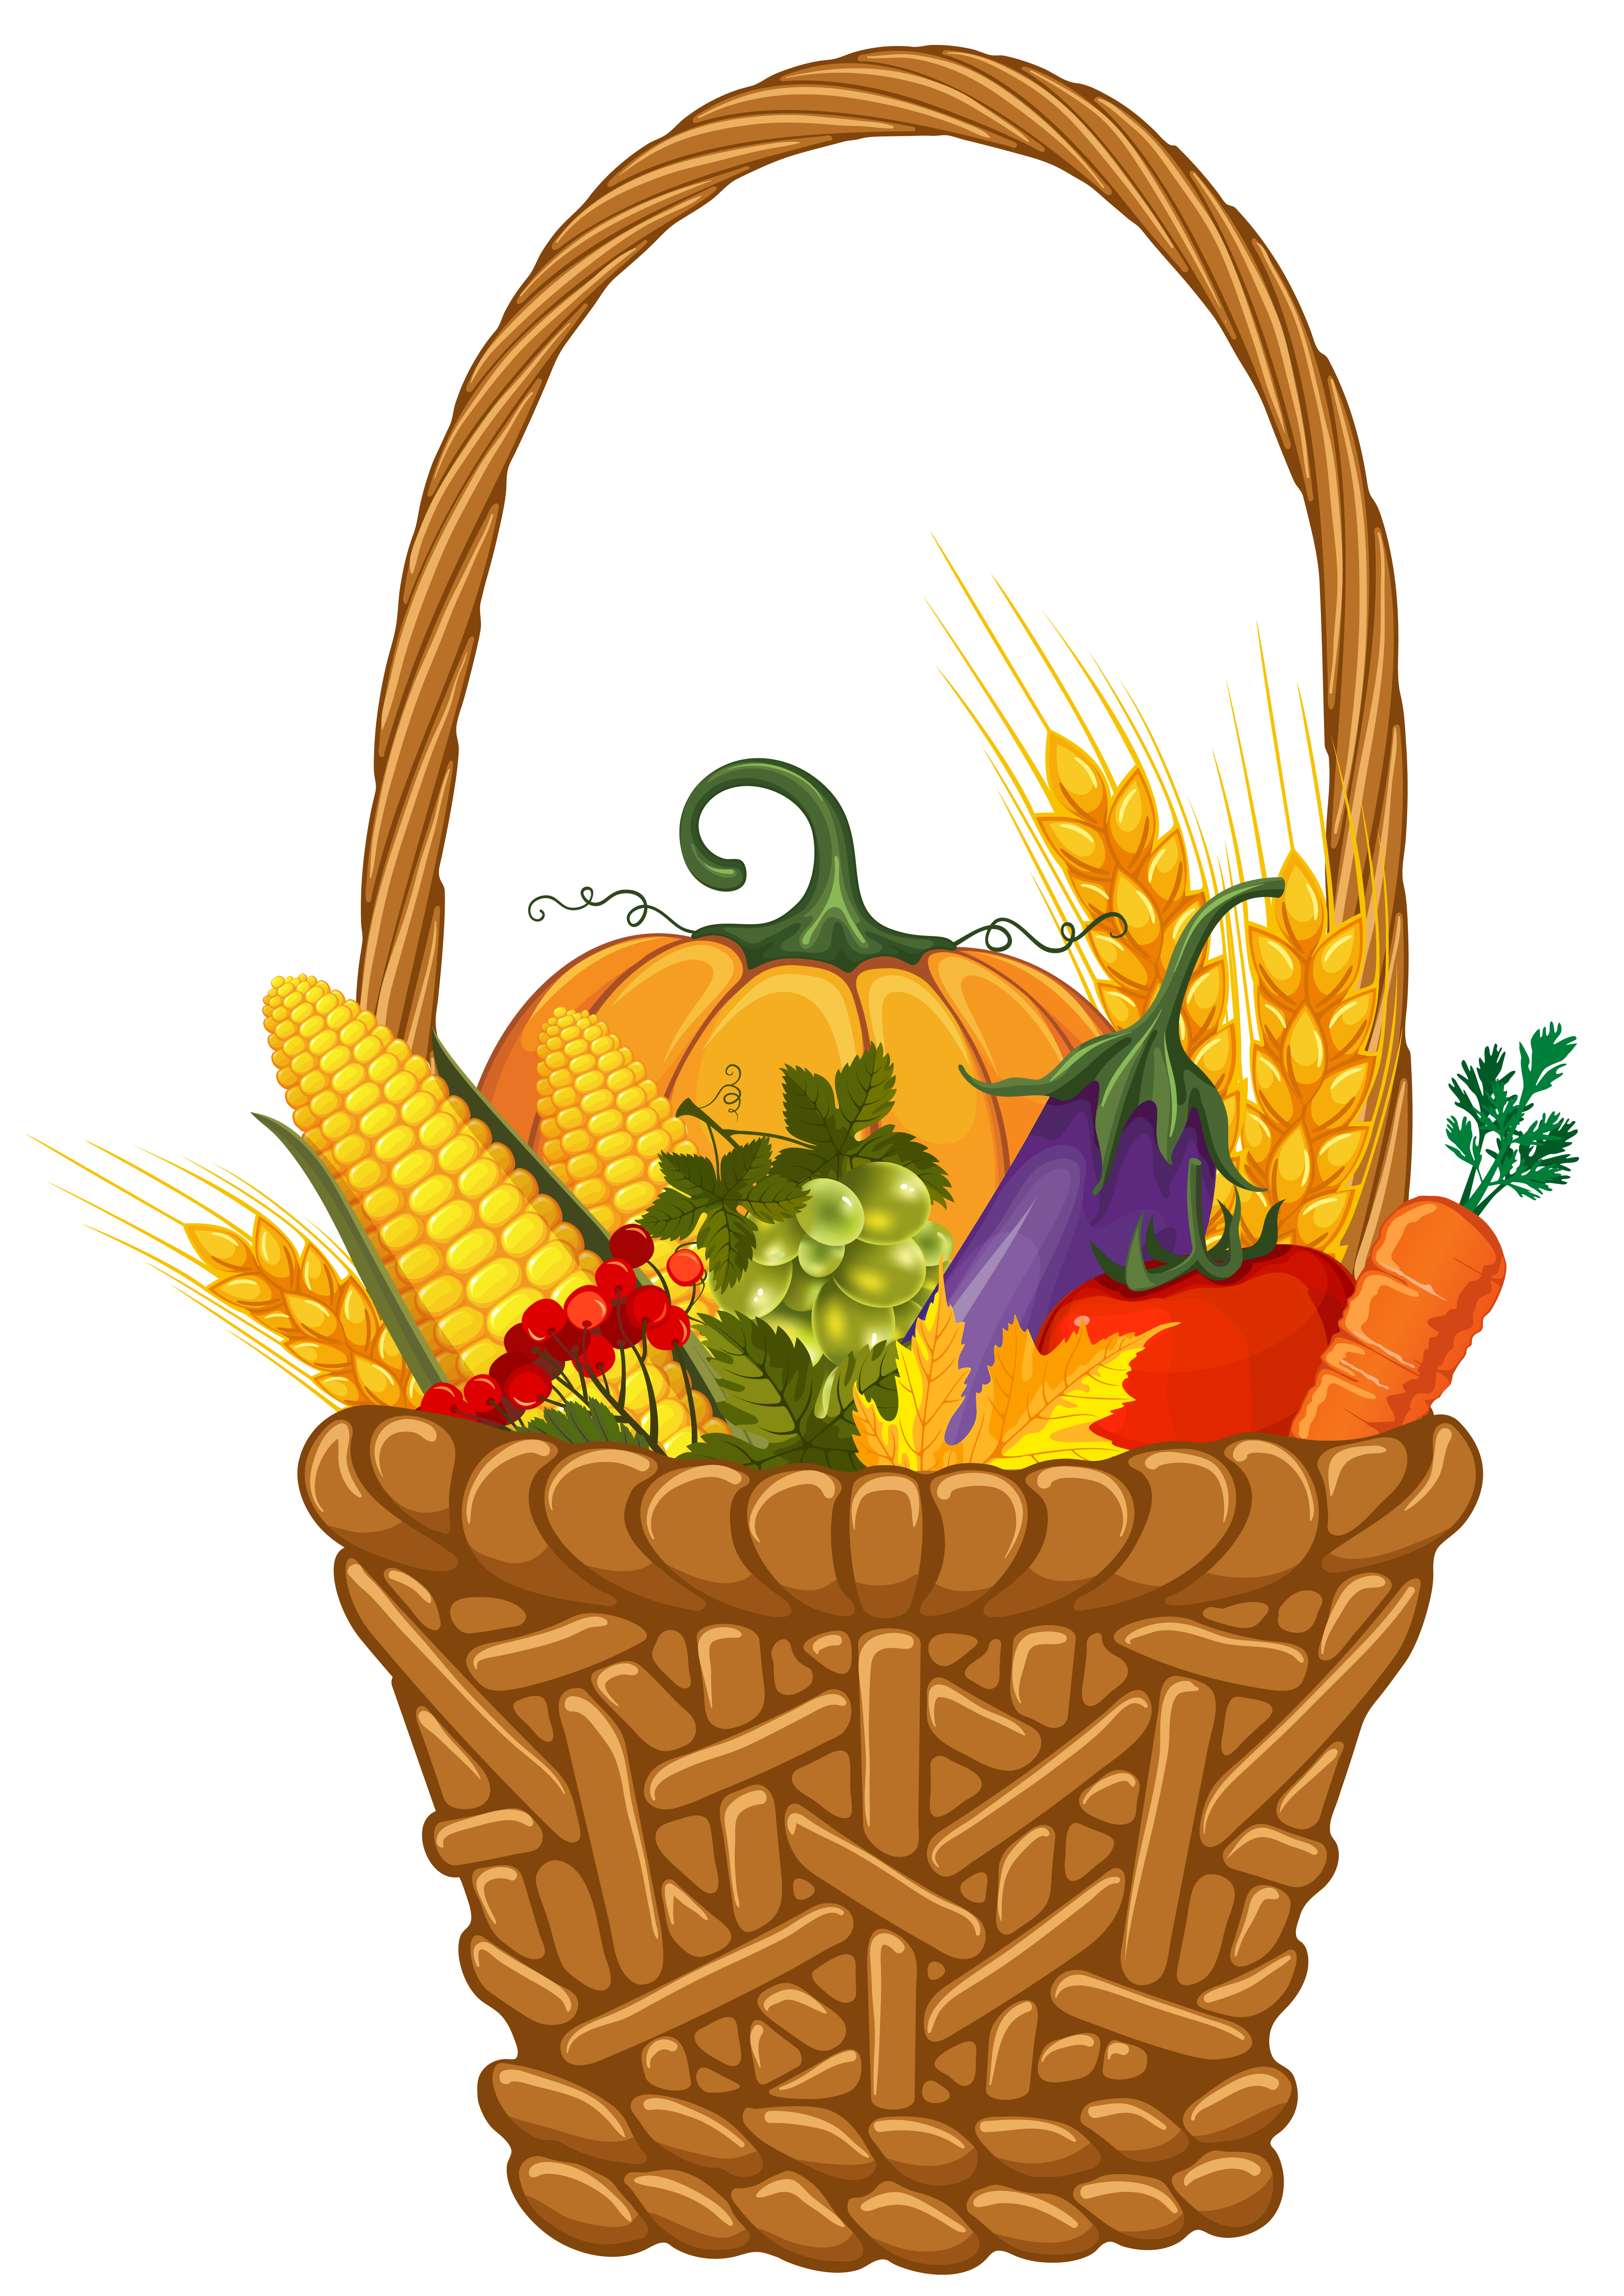 Fall harvest png. Basket clipart image gallery